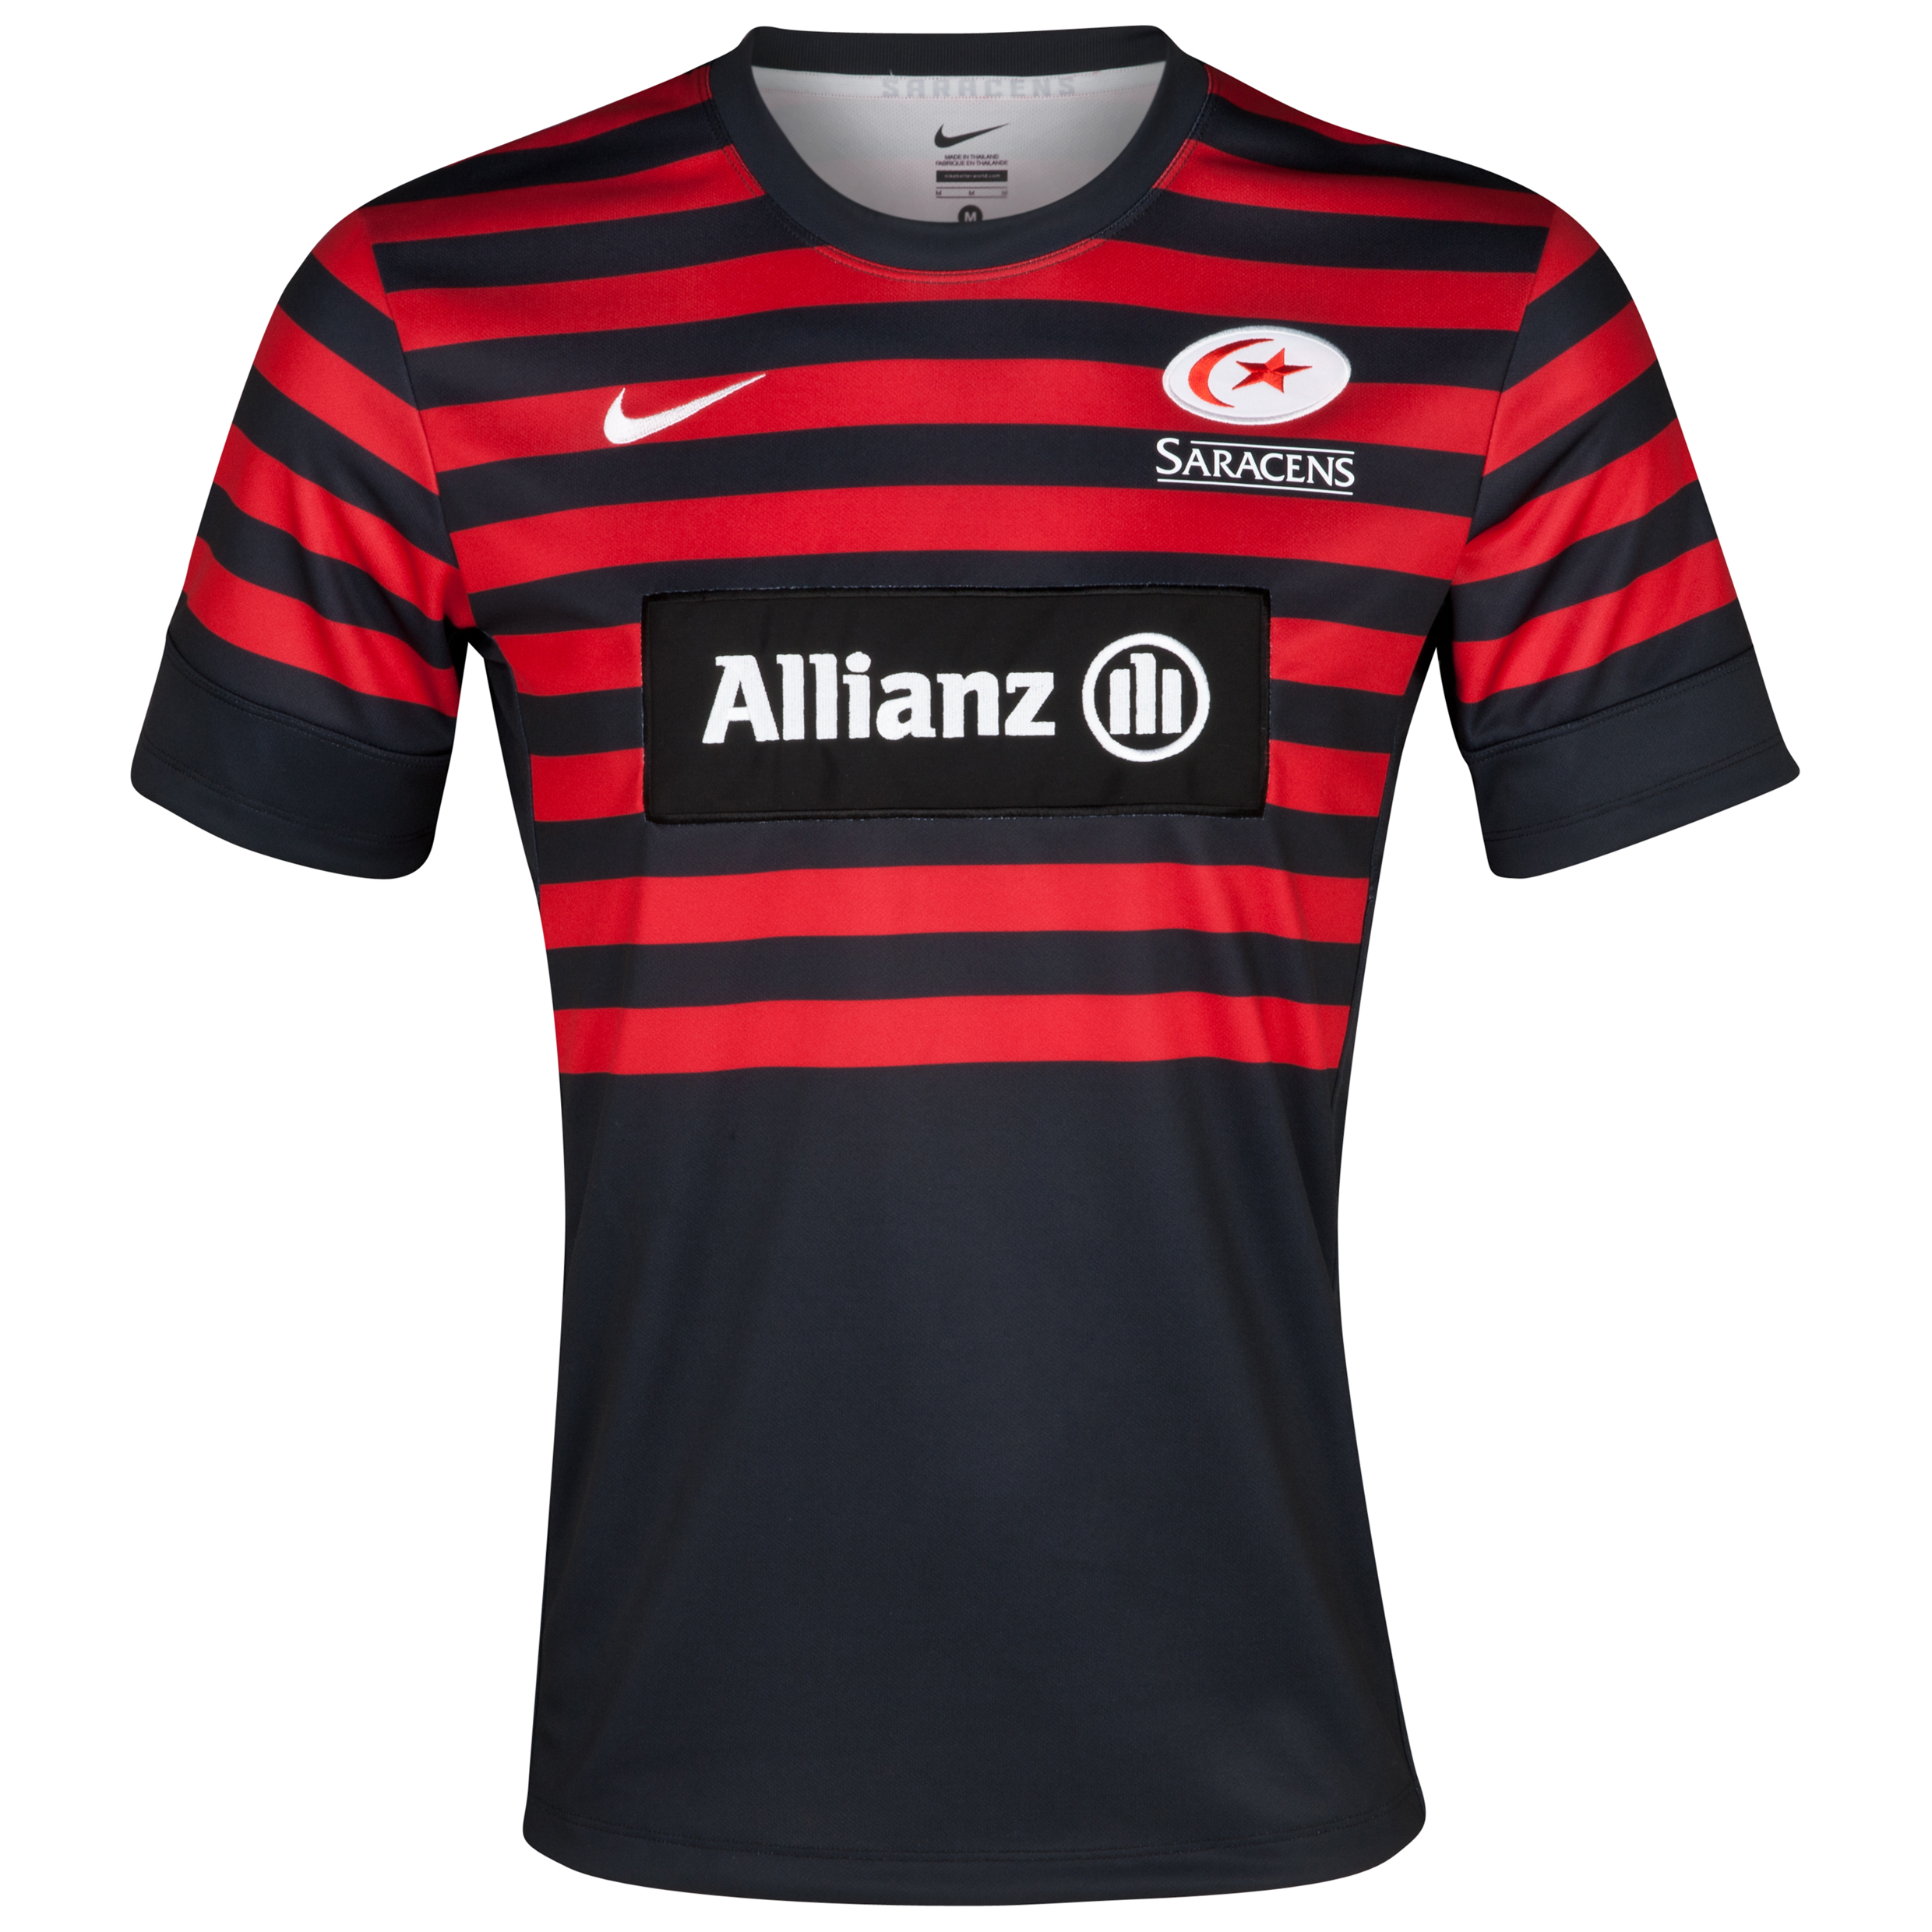 Saracens Home Replica Jersey 2012/13 - Black/University Red/White